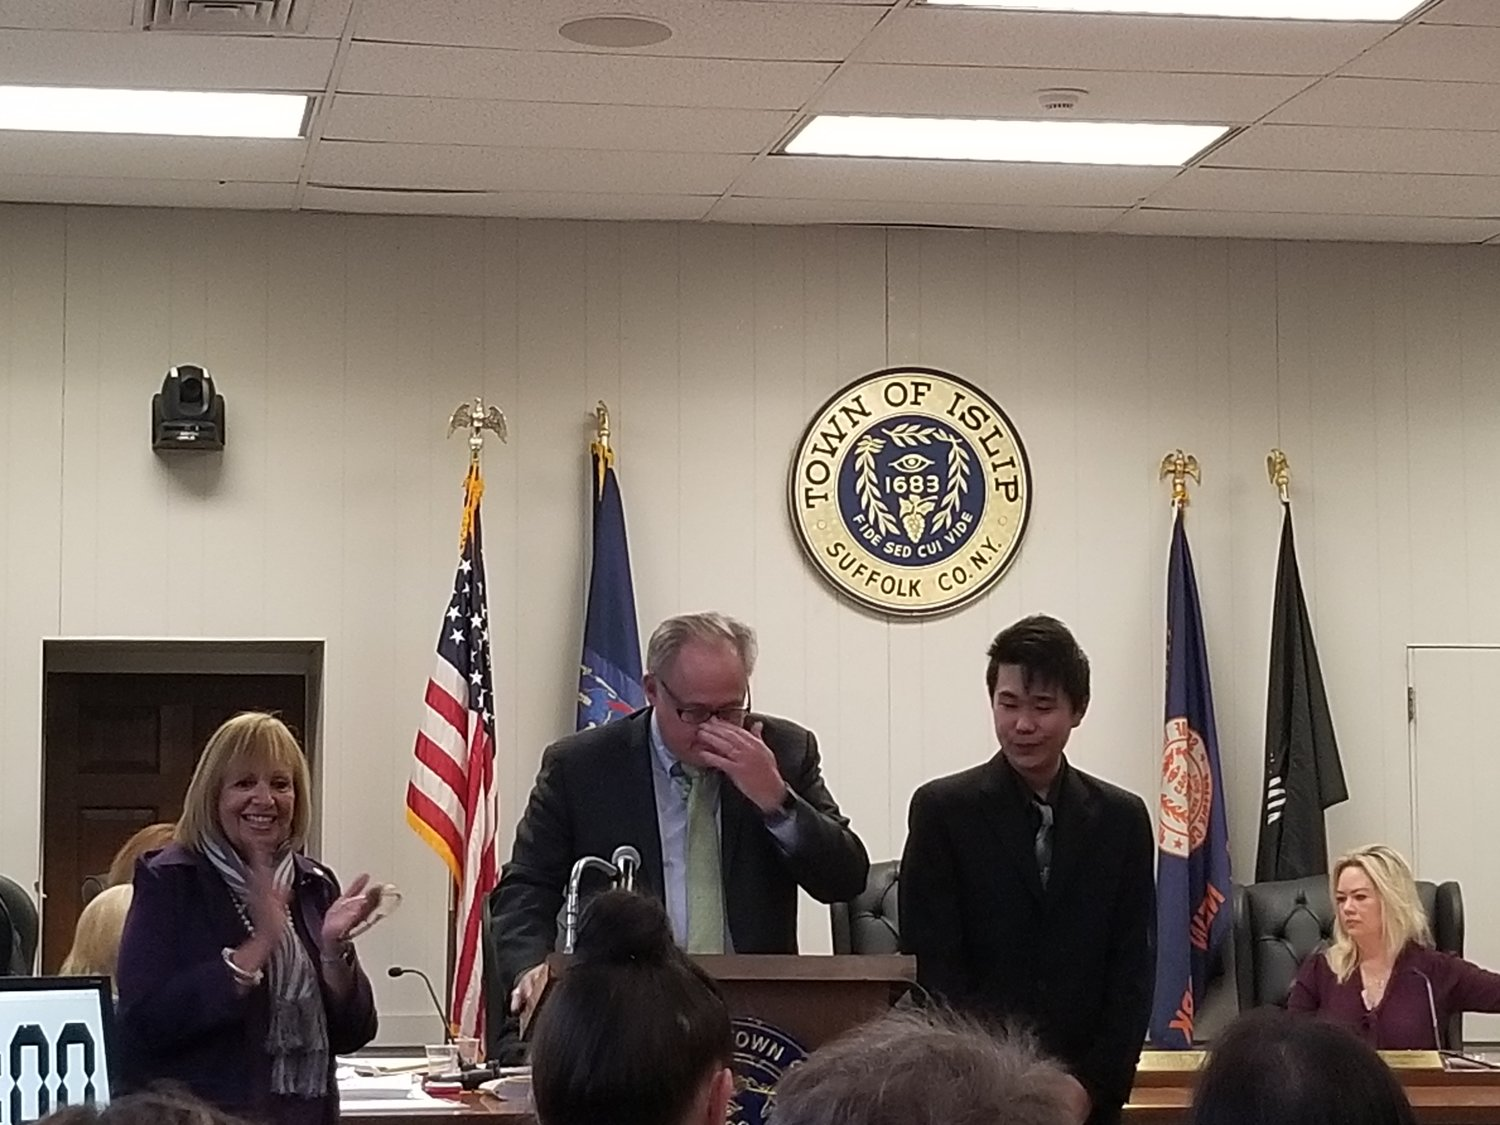 Yu Kevin Zhu is honored for his achievements as the first semifinalist in the Regeneron Science Talent Search from Central Islip High School.